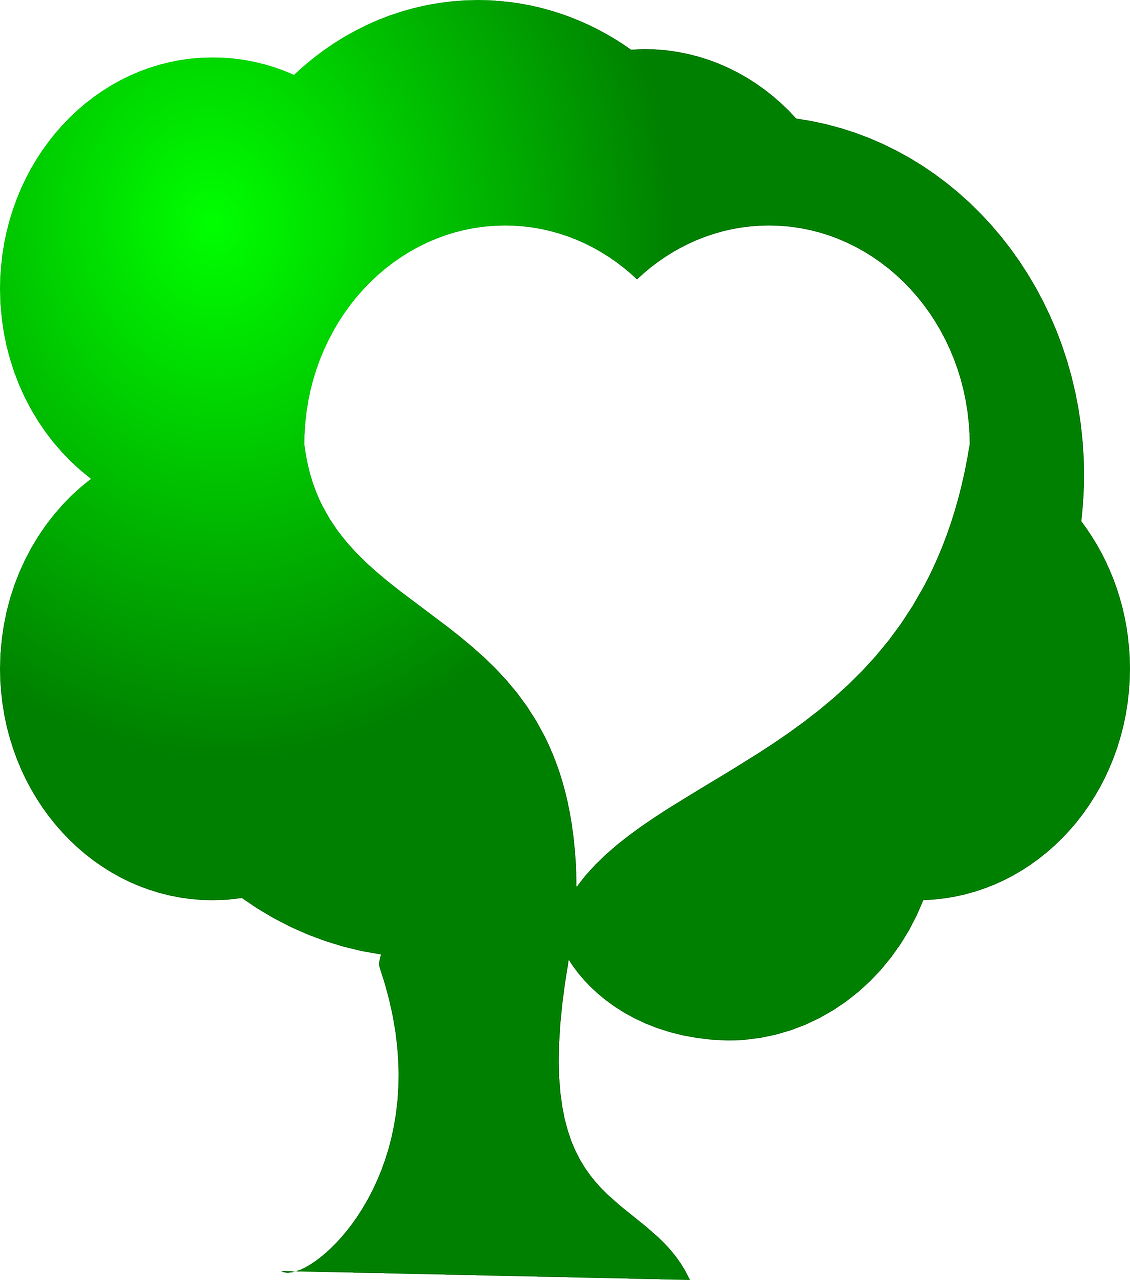 Save trees clipart image free stock Go Green Save A Tree Clipart - Clipart Kid image free stock